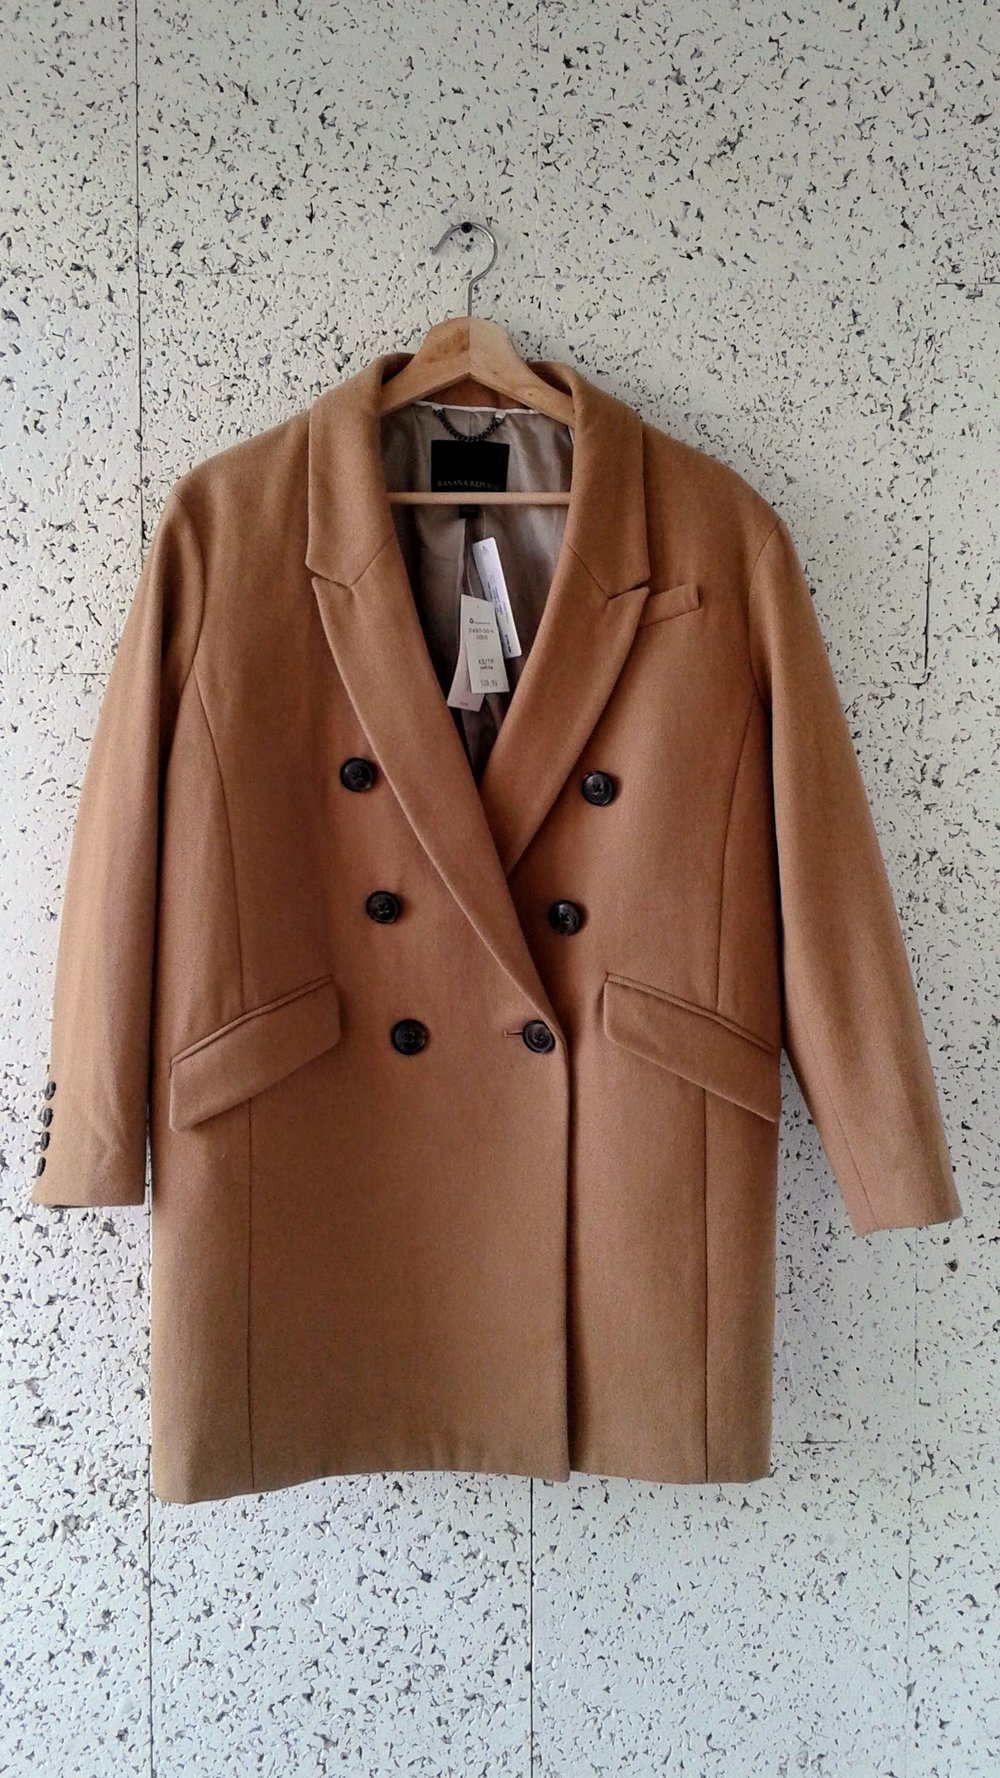 Banana Republic  coat (NWT); Size XS, $78